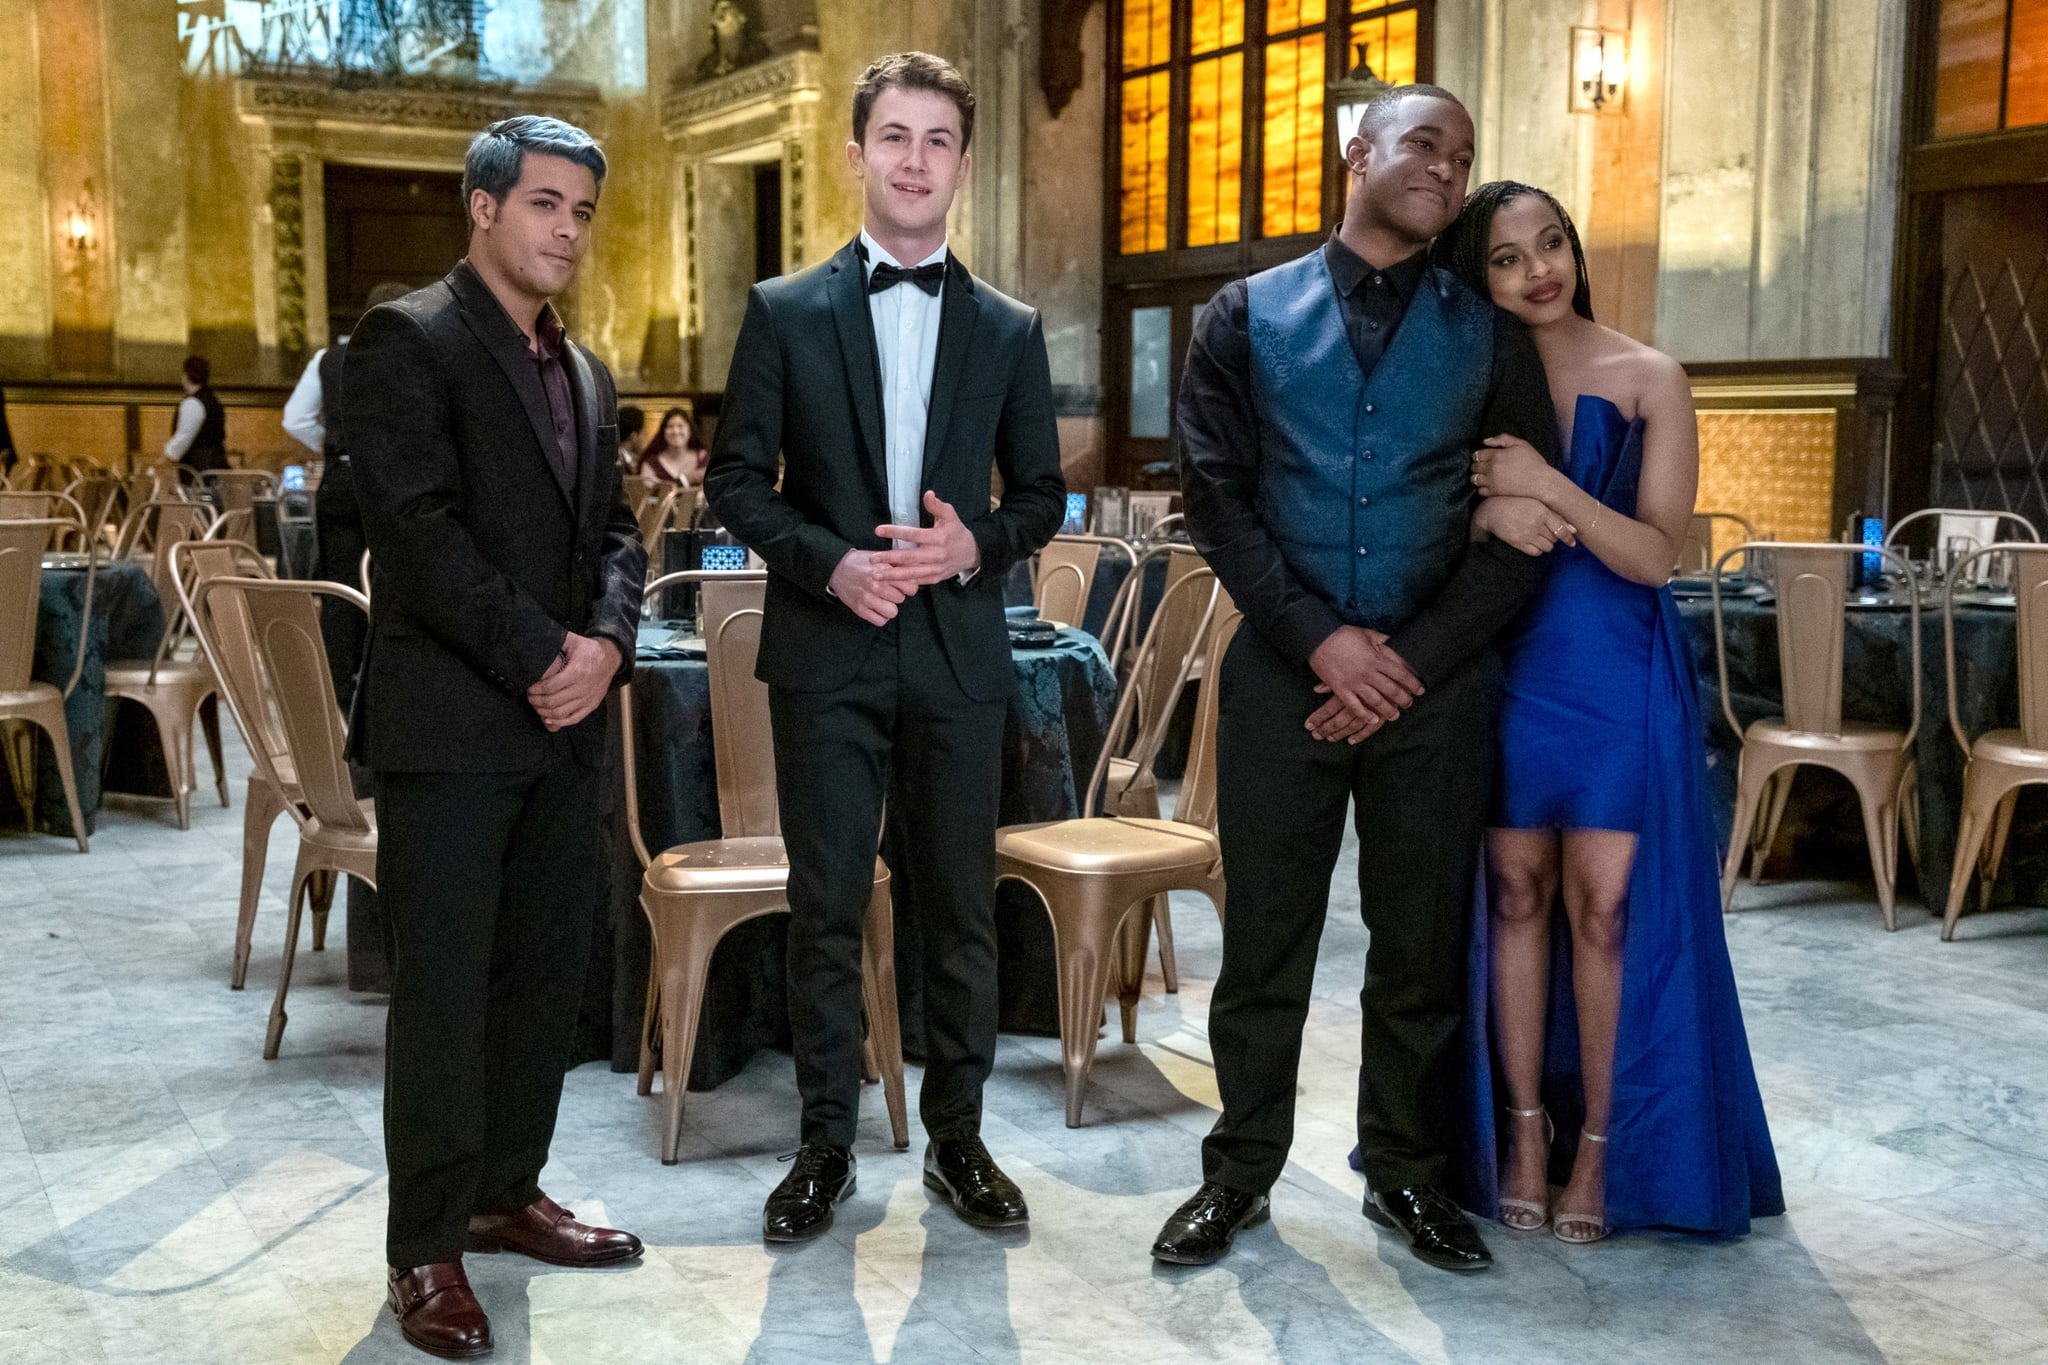 13 REASONS WHY, (aka THIRTEEN REASONS WHY), from left: Christian Navarro, Dylan Minnette, Rj Brown, Grace Saif, (Season 4, ep. 409, aired June 5, 2020). photo: David Moir / Netflix / Courtesy Everett Collection